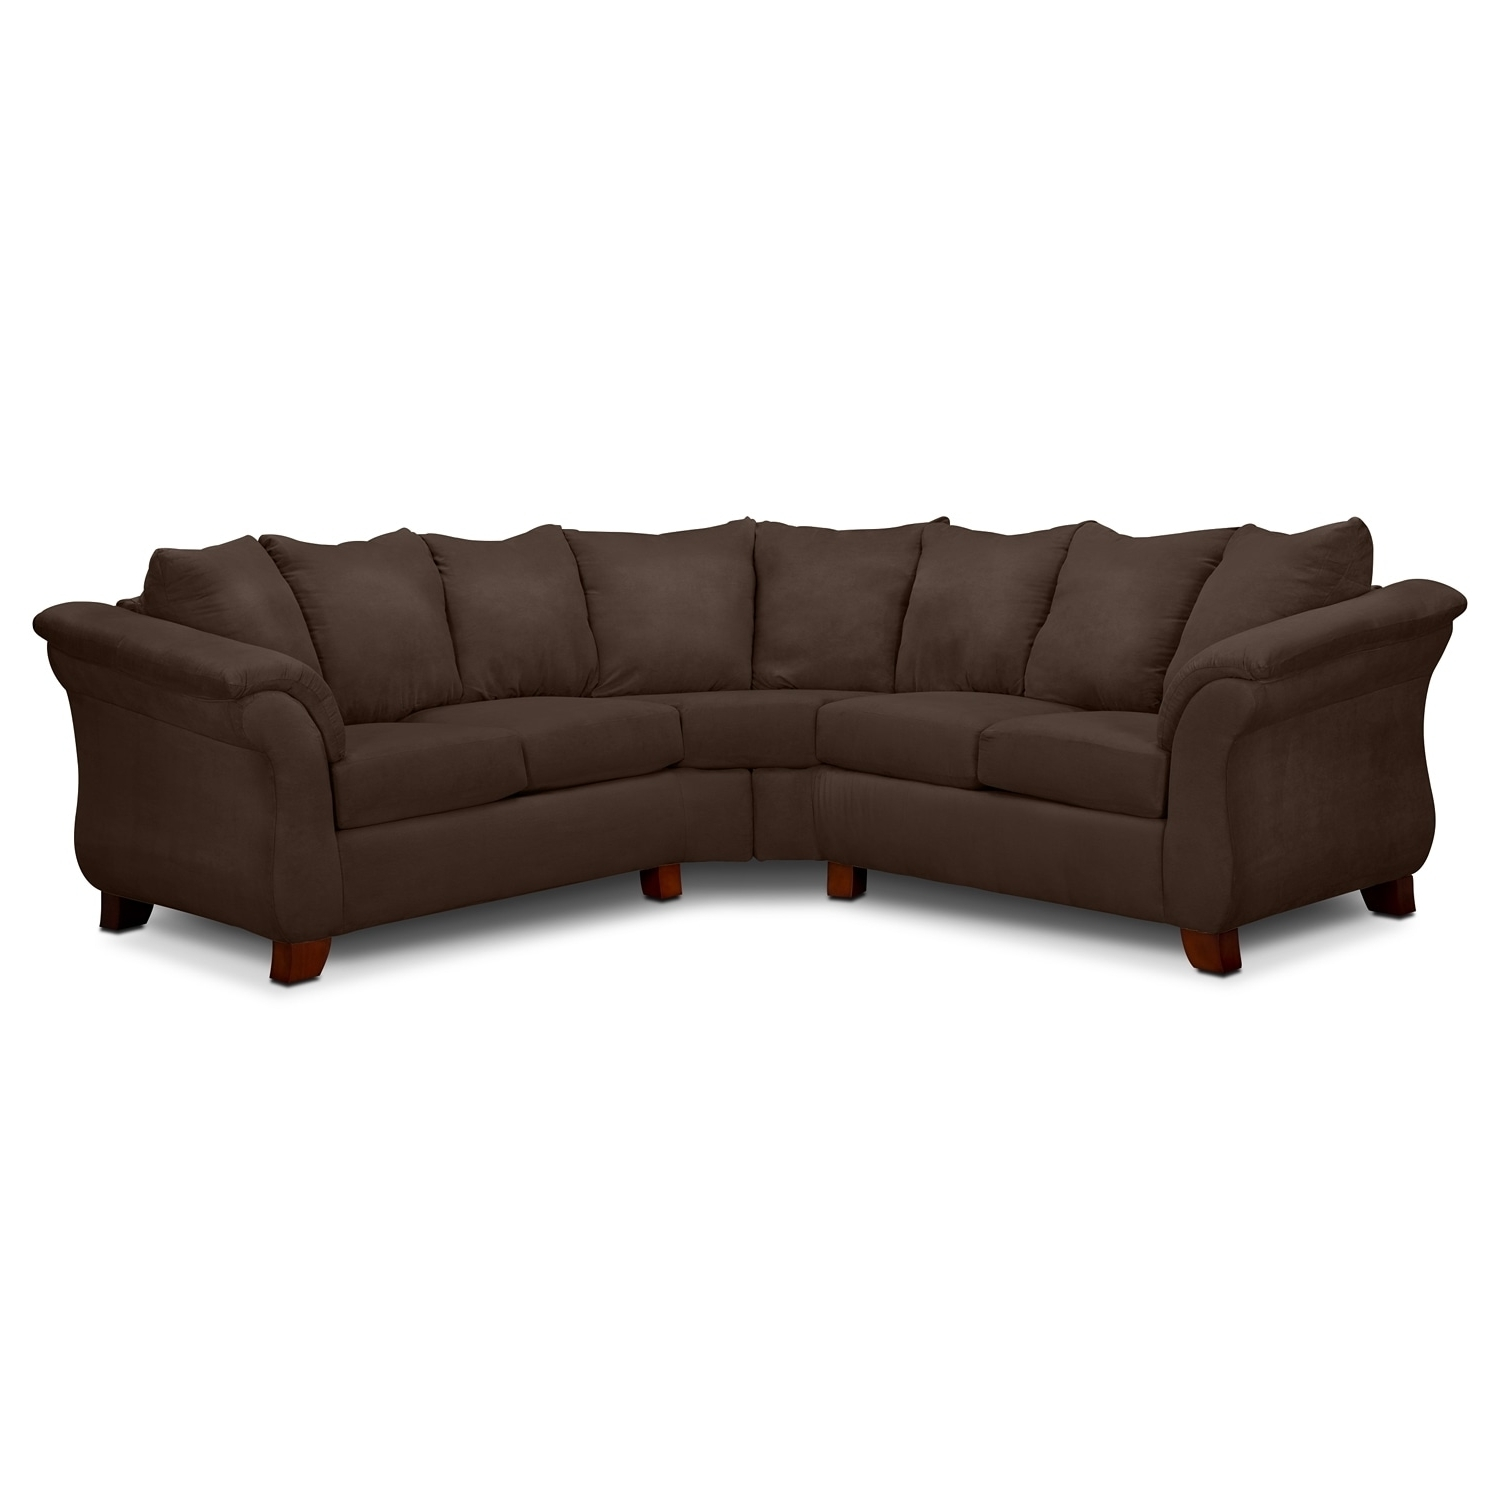 Value City Furniture And Mattresses With Sectional Sofas Under 800 (Gallery 15 of 20)